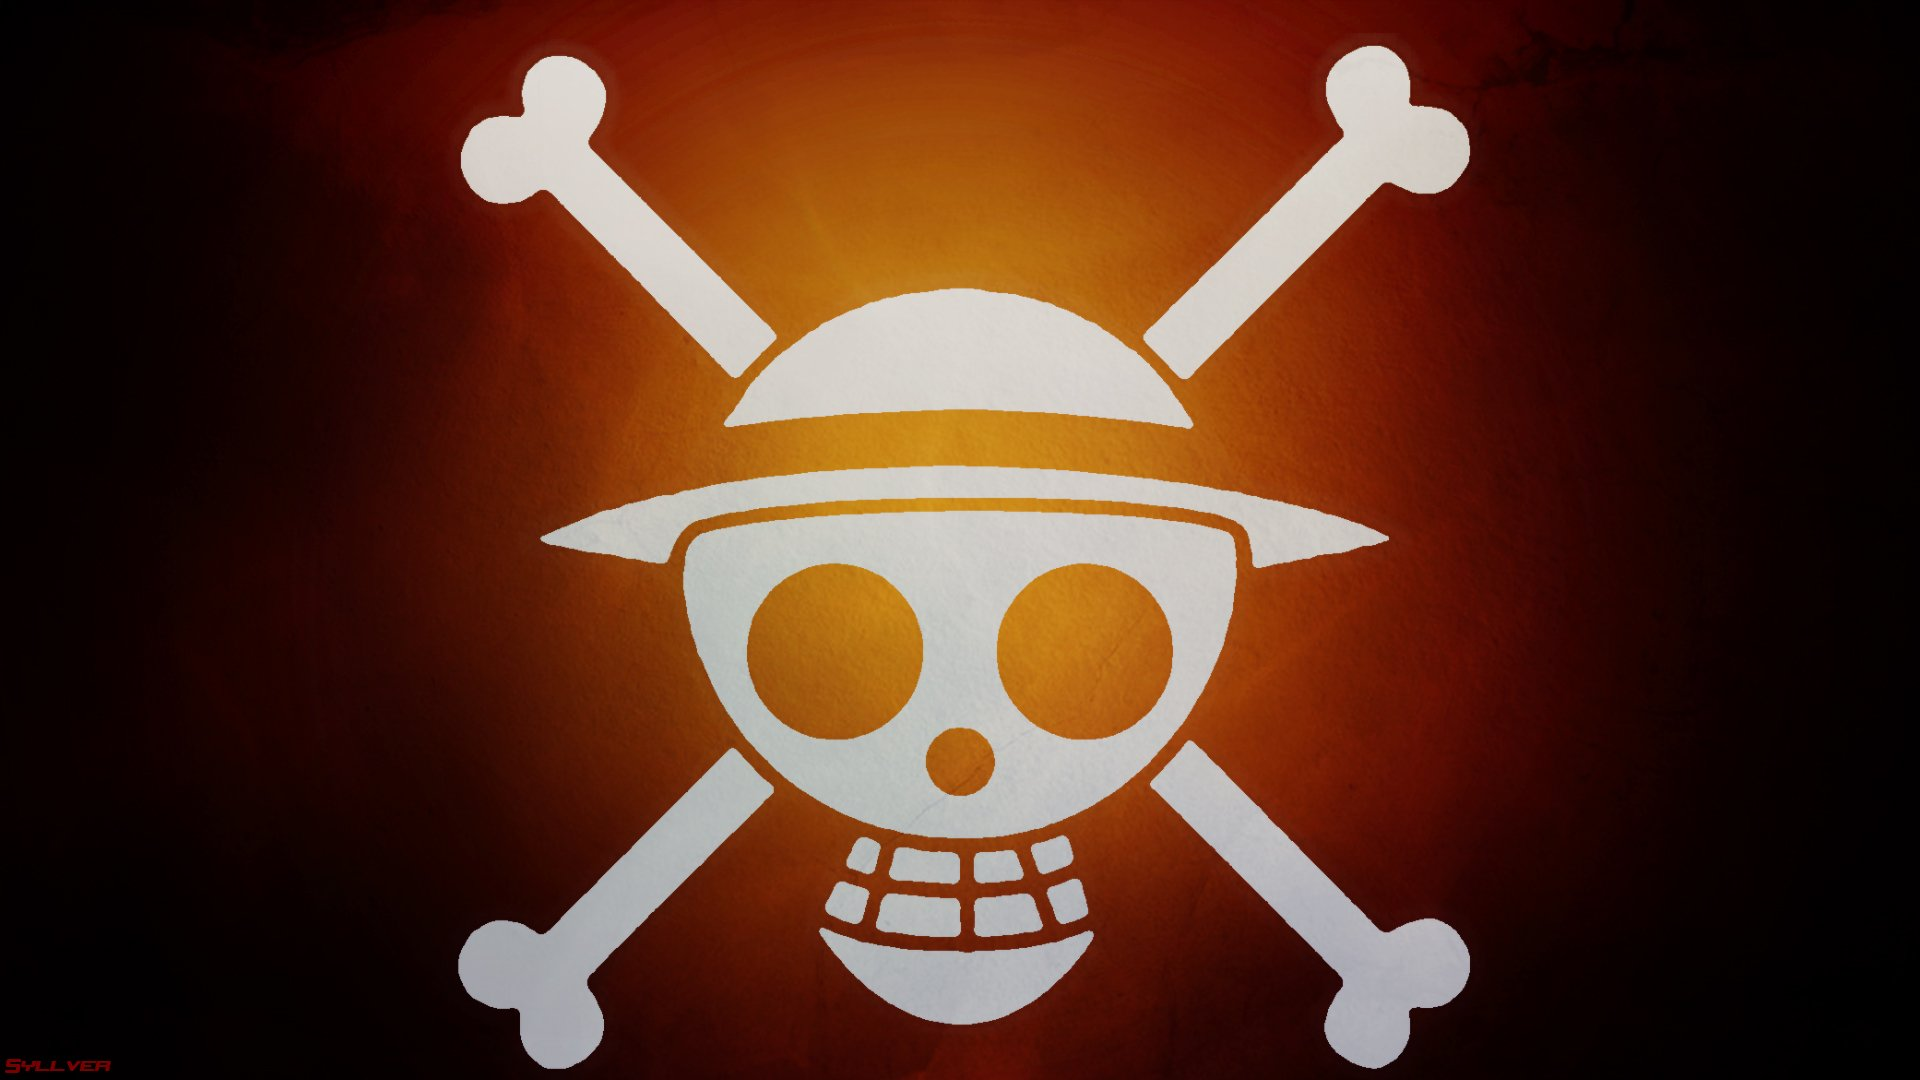 Luffy Jolly Roger Hd Wallpaper Background Image 1920x1080 Id